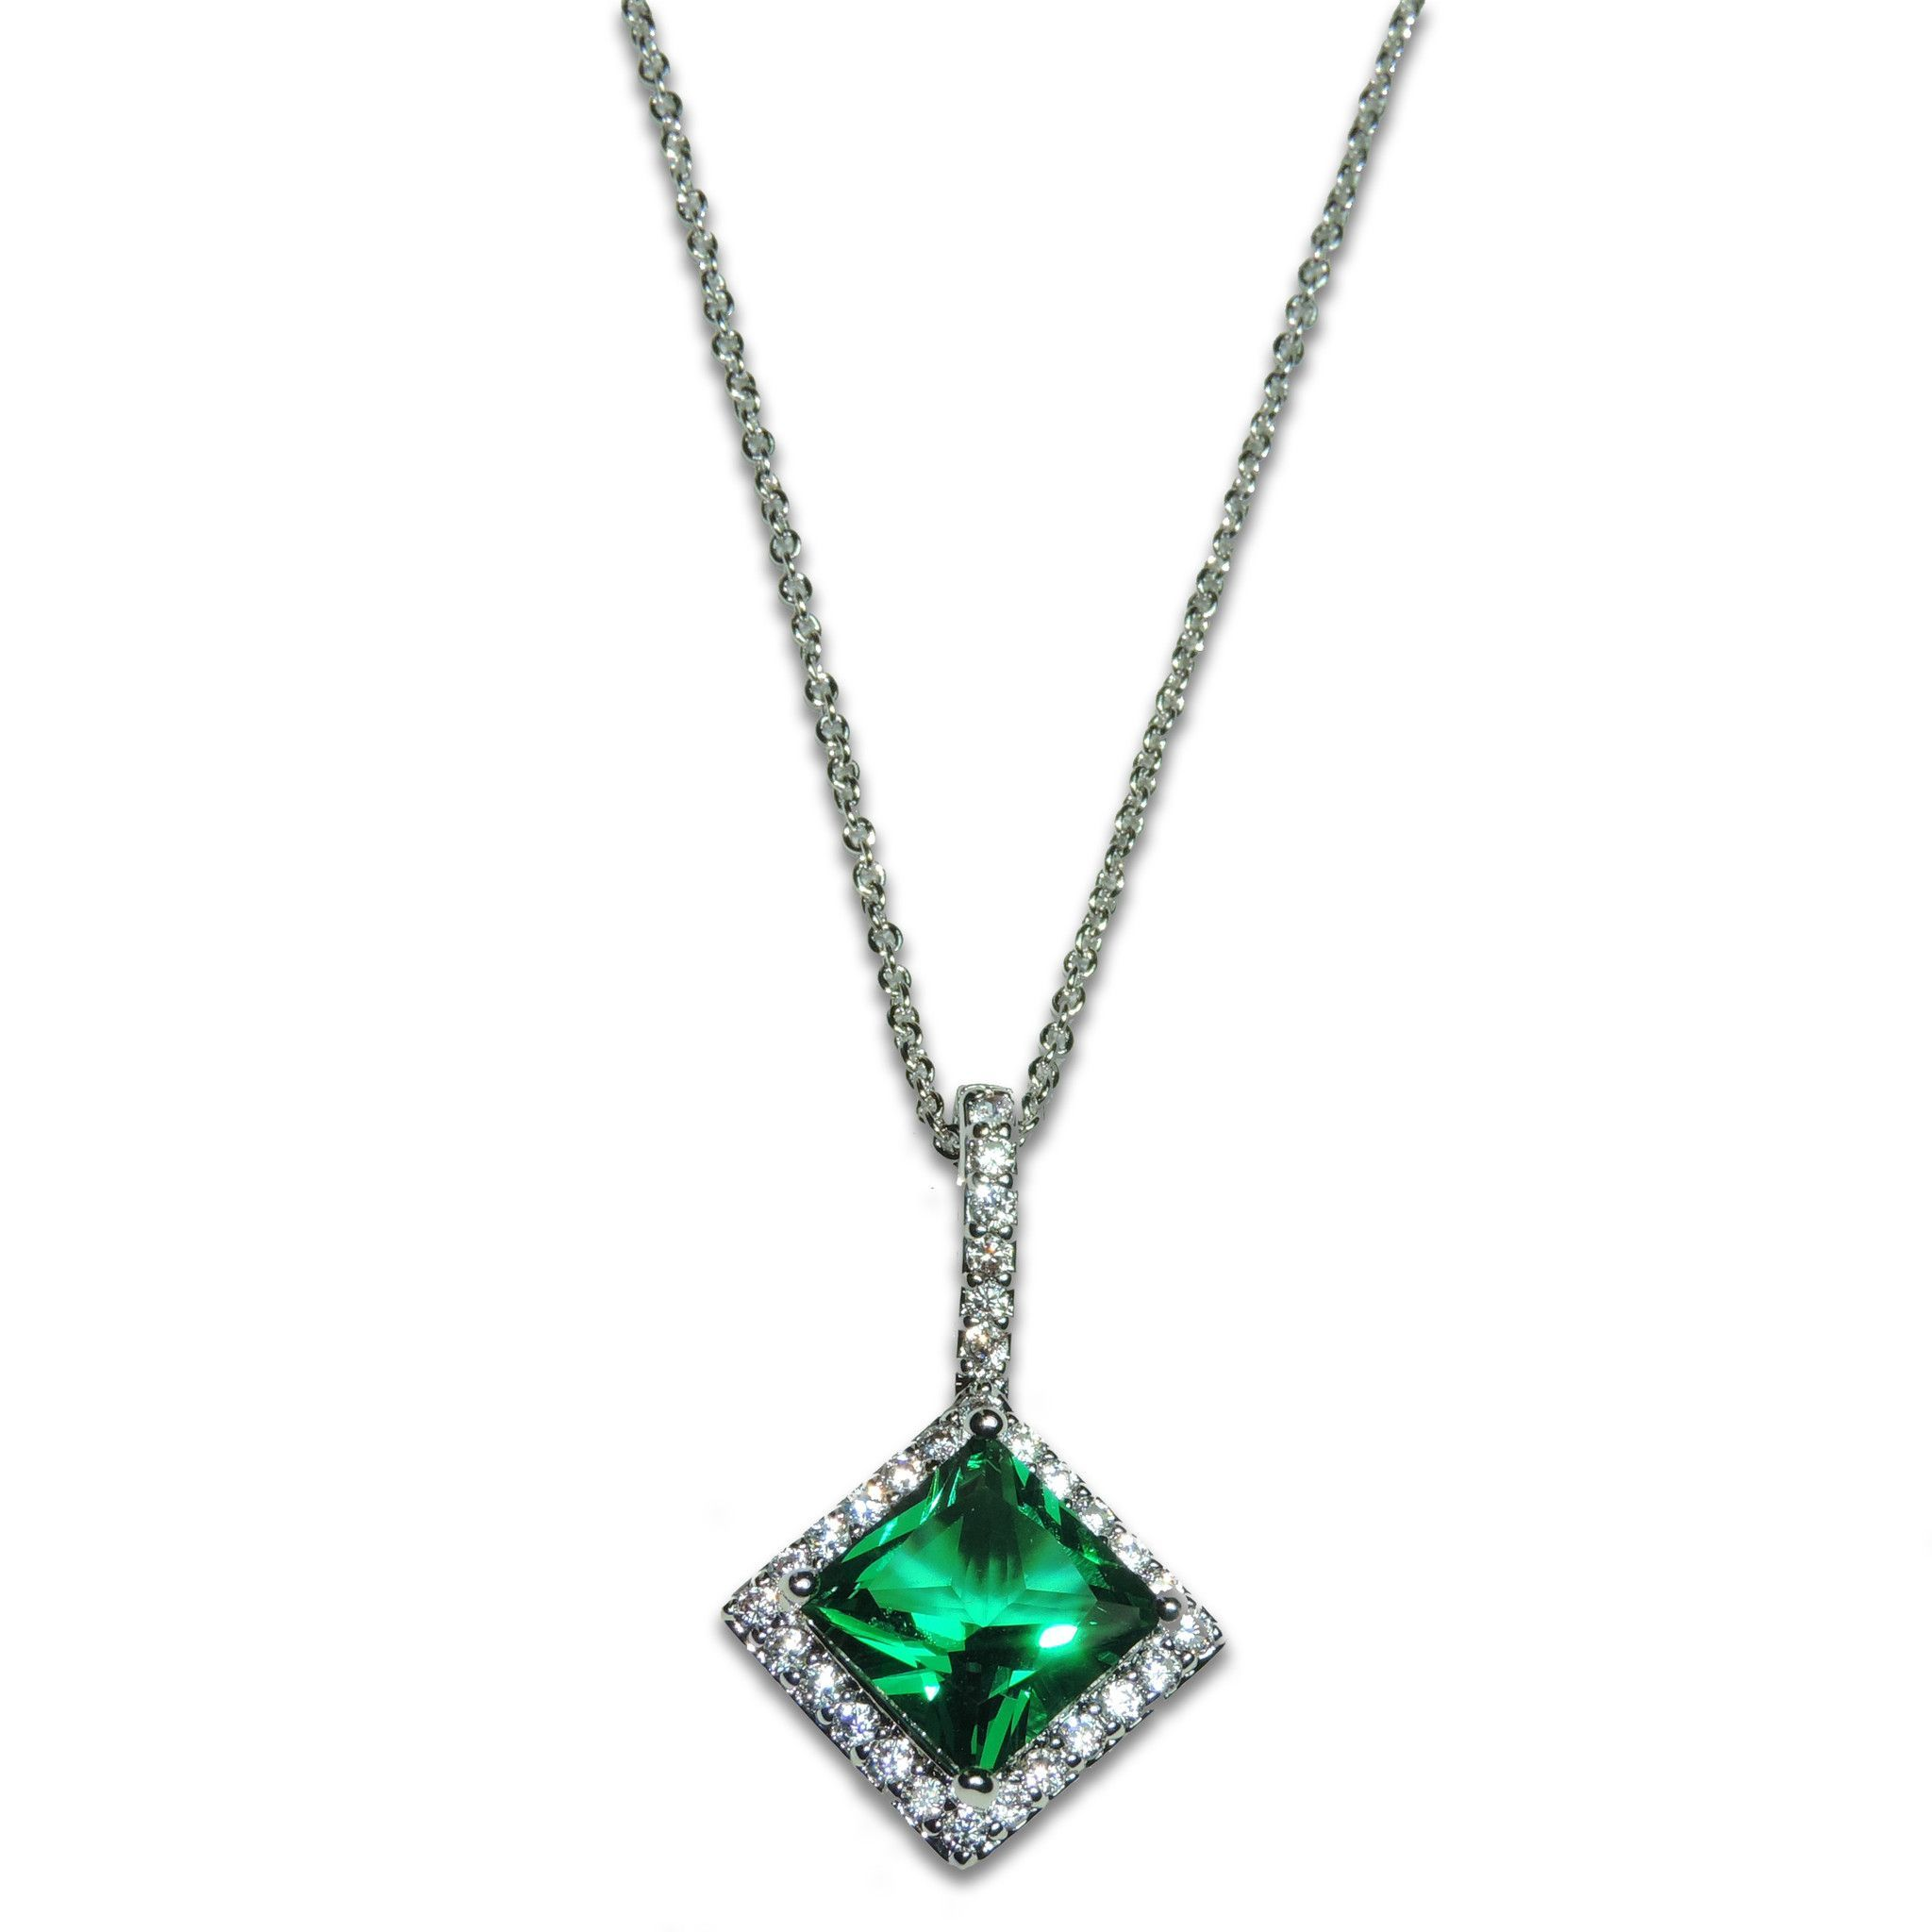 belle stone cubic necklace diamond birthstone emerald cut beloved halo pendant green products wedding bridesmaid faux zirconia round cz jewelry sparkles